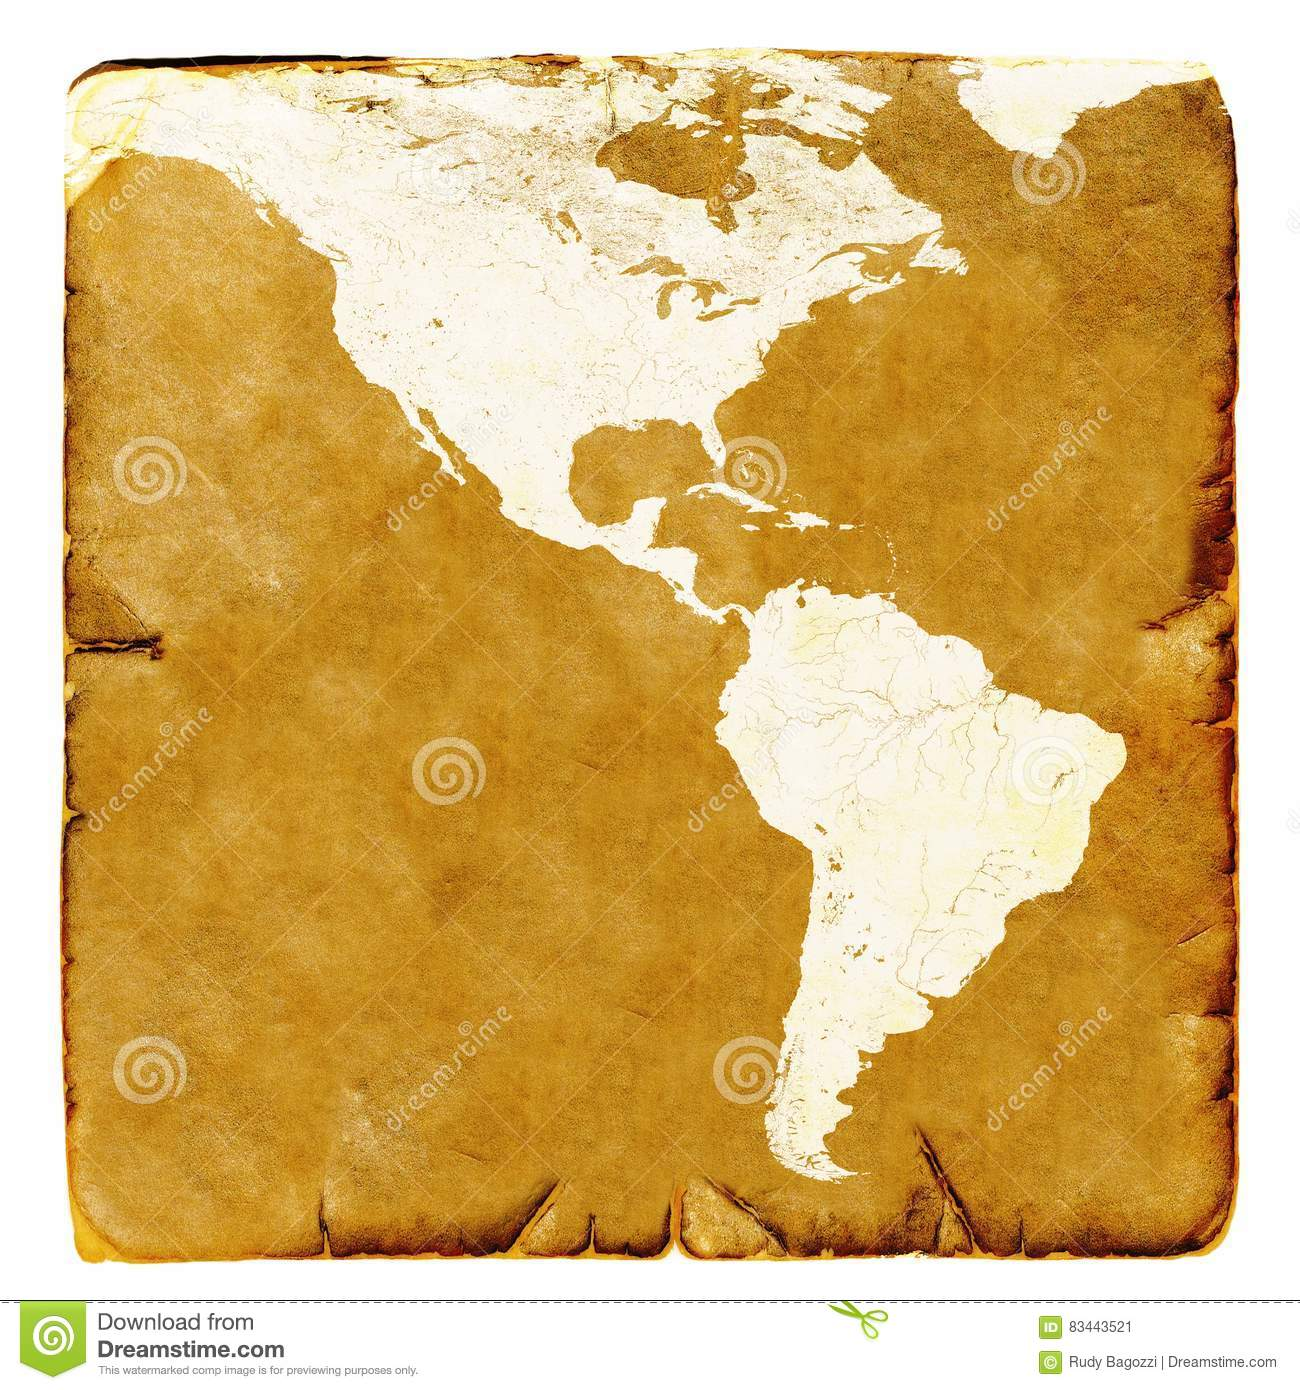 Map Of USA And Latin America Blank In Old Style. Brown Graphics In A ...